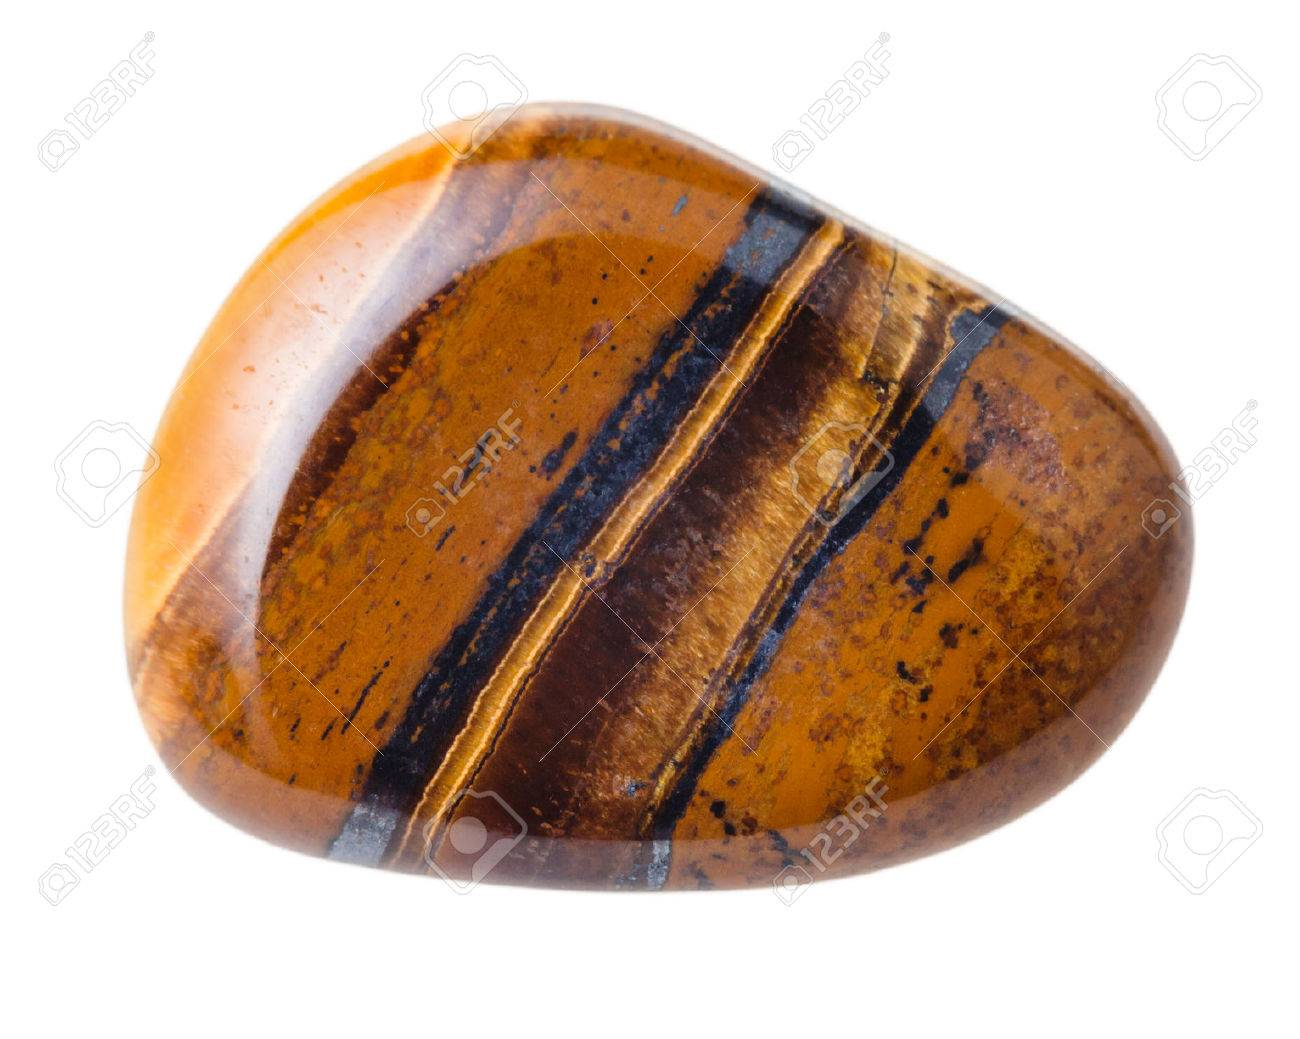 natural mineral gem stone - Tiger's eye (Tigers eye, Tiger eye) gemstone isolated on white background close up - 50790263